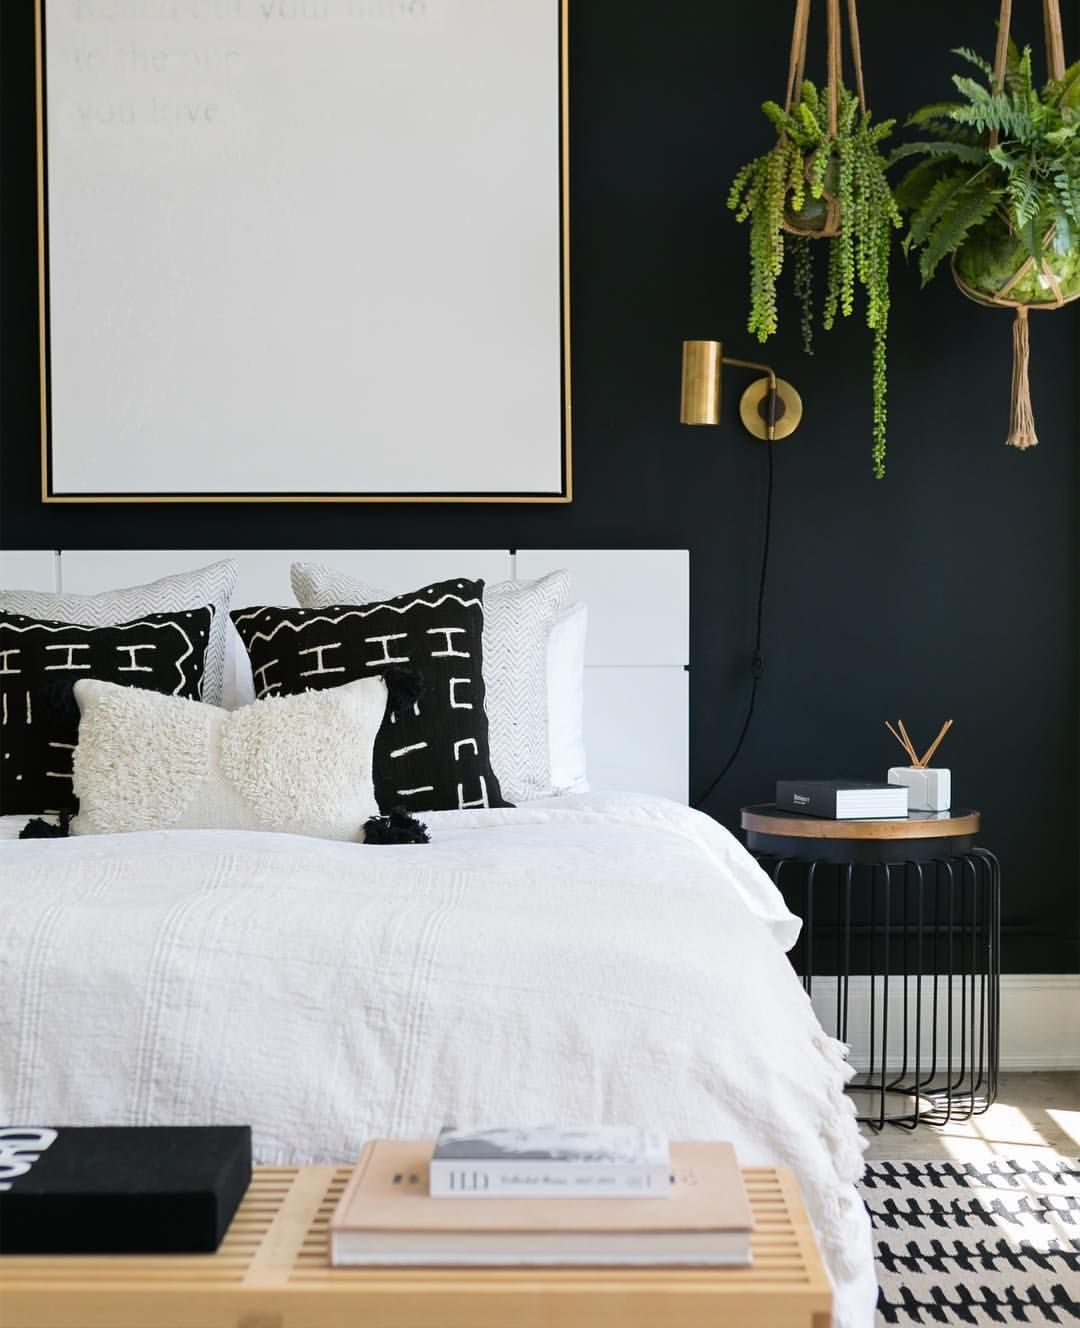 Épinglé par Hesby | Boho Home Decor sur BOHO BEDROOM | Pinterest ...